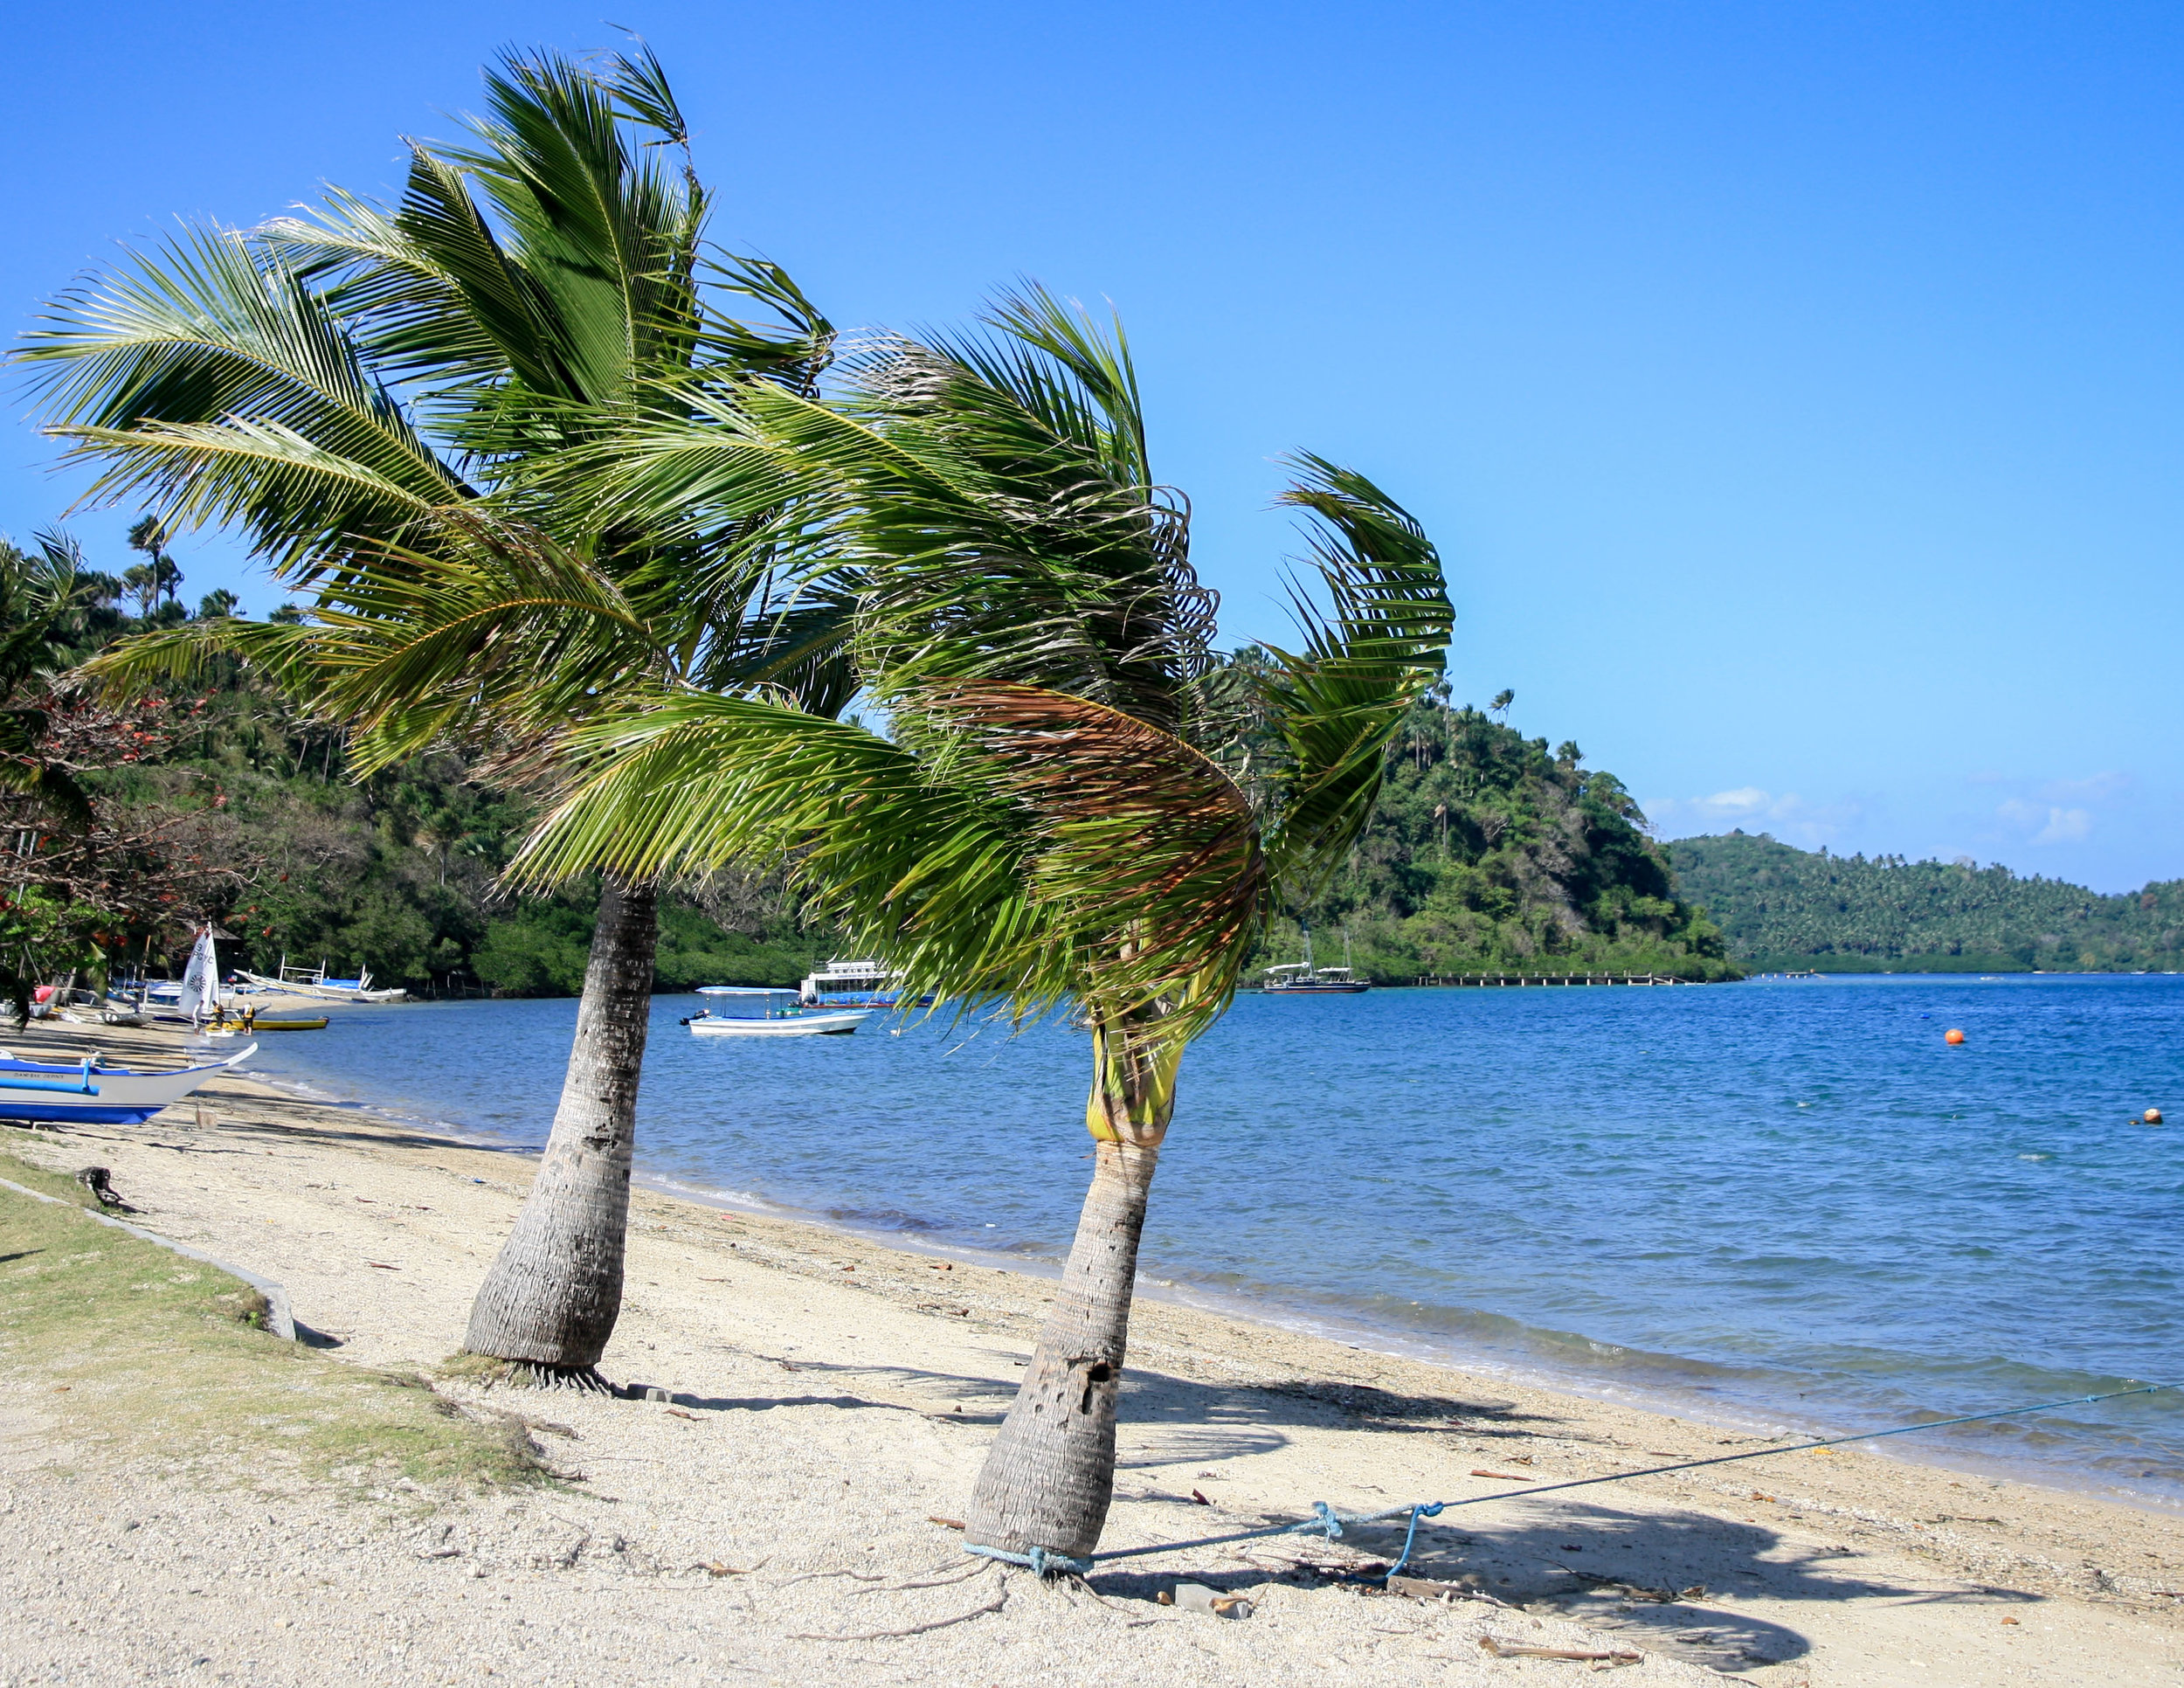 Best things to do in Luzon (The Philippines): Puerto Galera